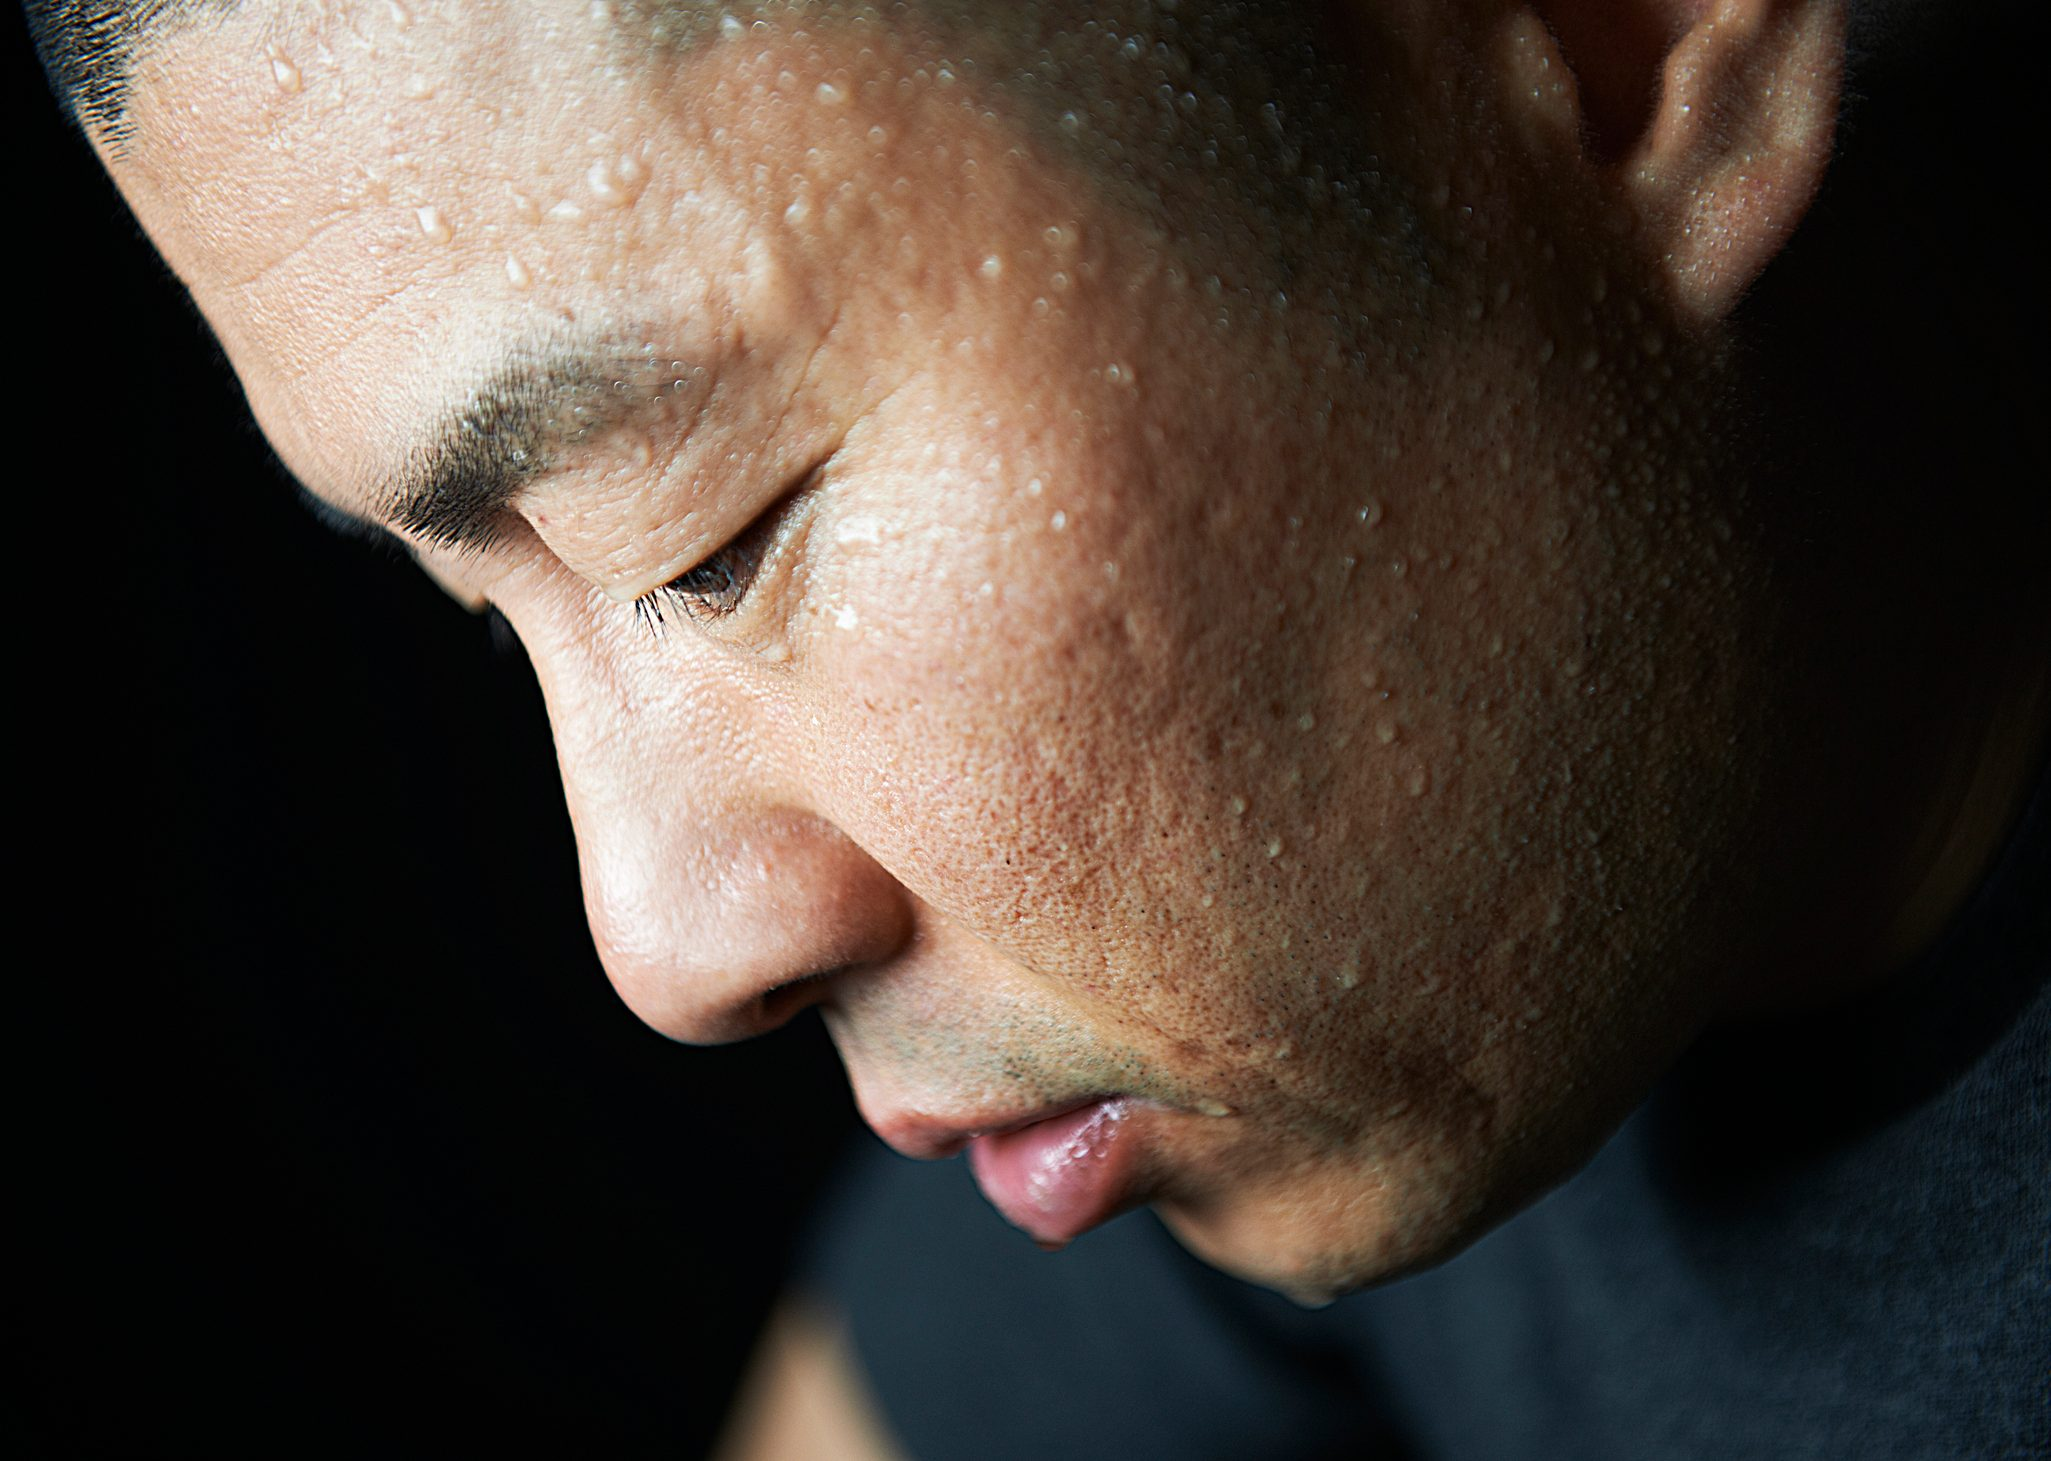 close up of sweat on man's face